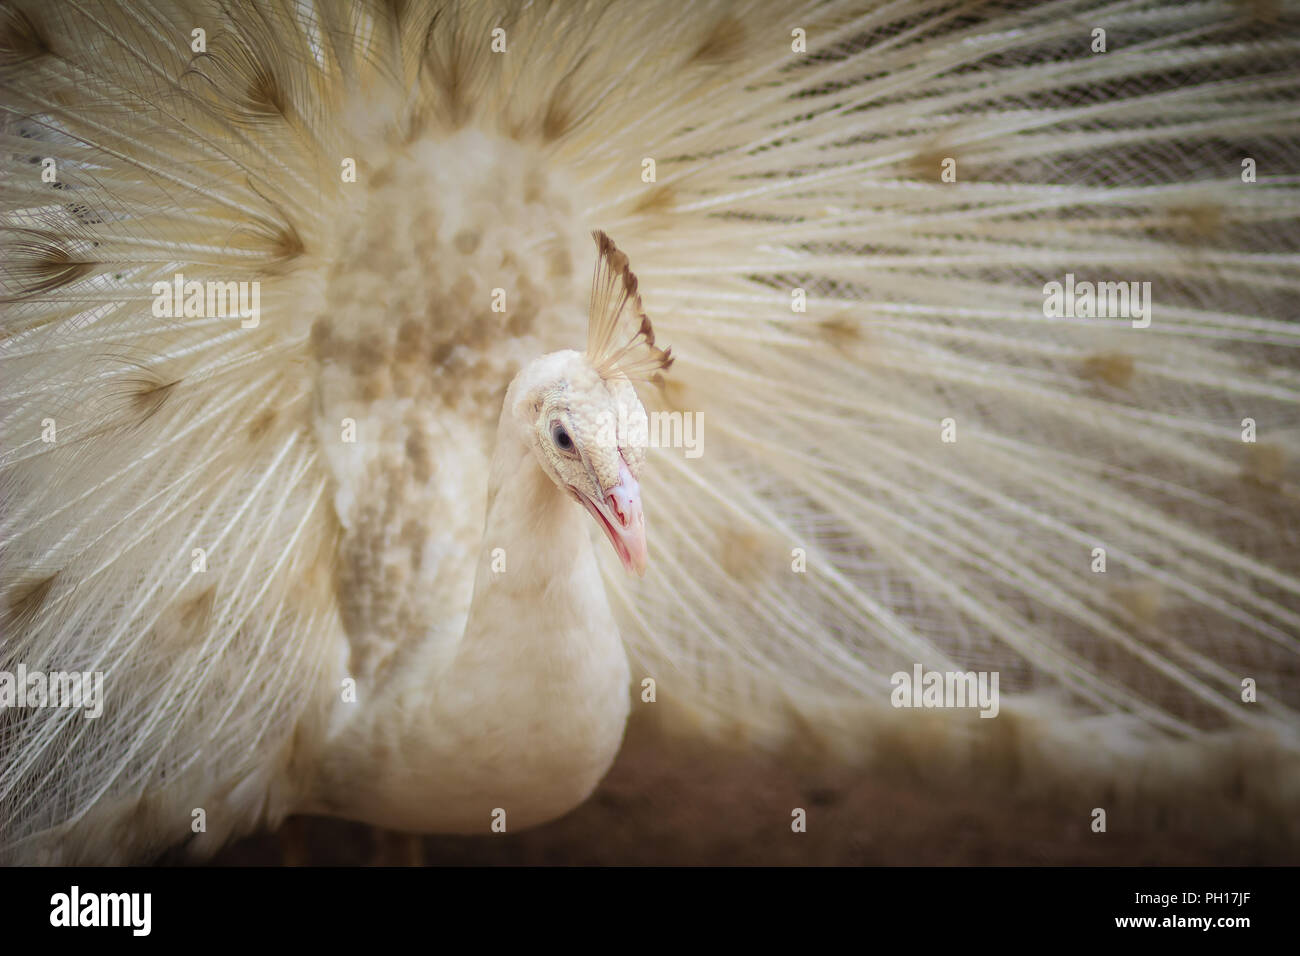 Beautiful white peafowl with feathers out. White male peacock with spread feathers. Albino peacock with fully opened tail. - Stock Image